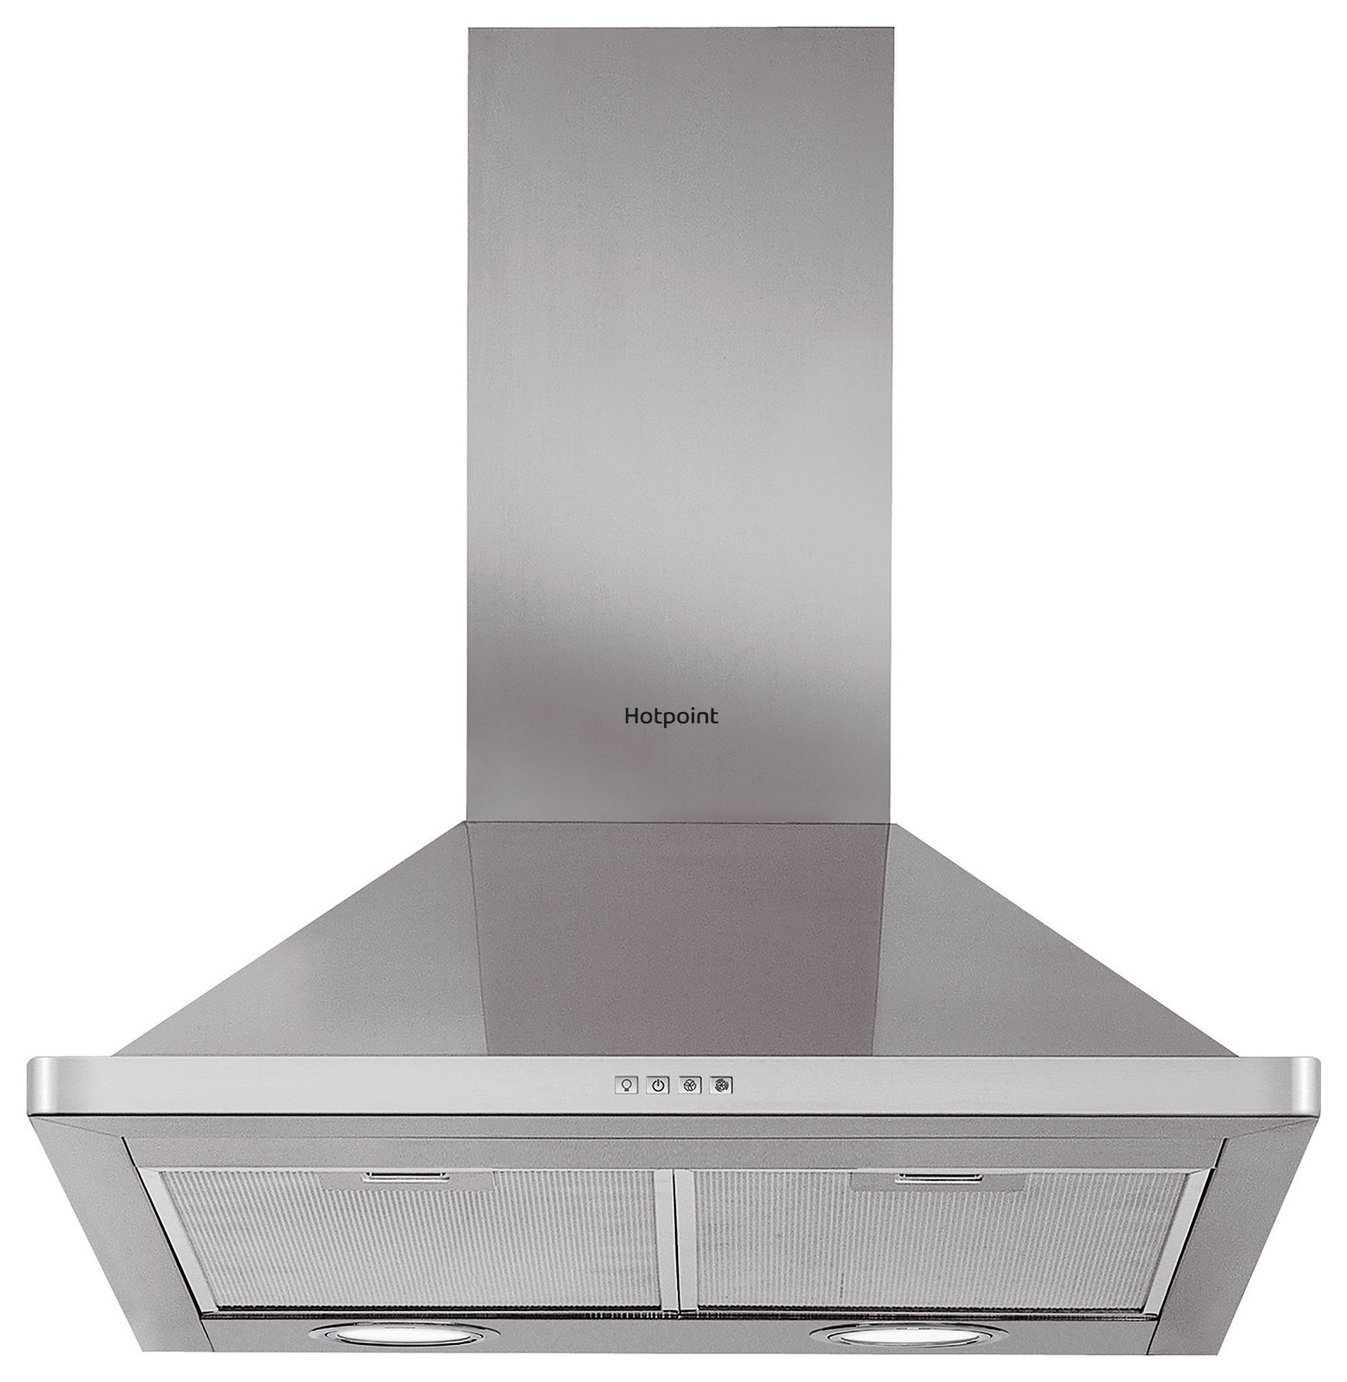 Hotpoint PHPN7.5FLMX 70cm Cooker Hood - Stainless Steel from Hotpoint